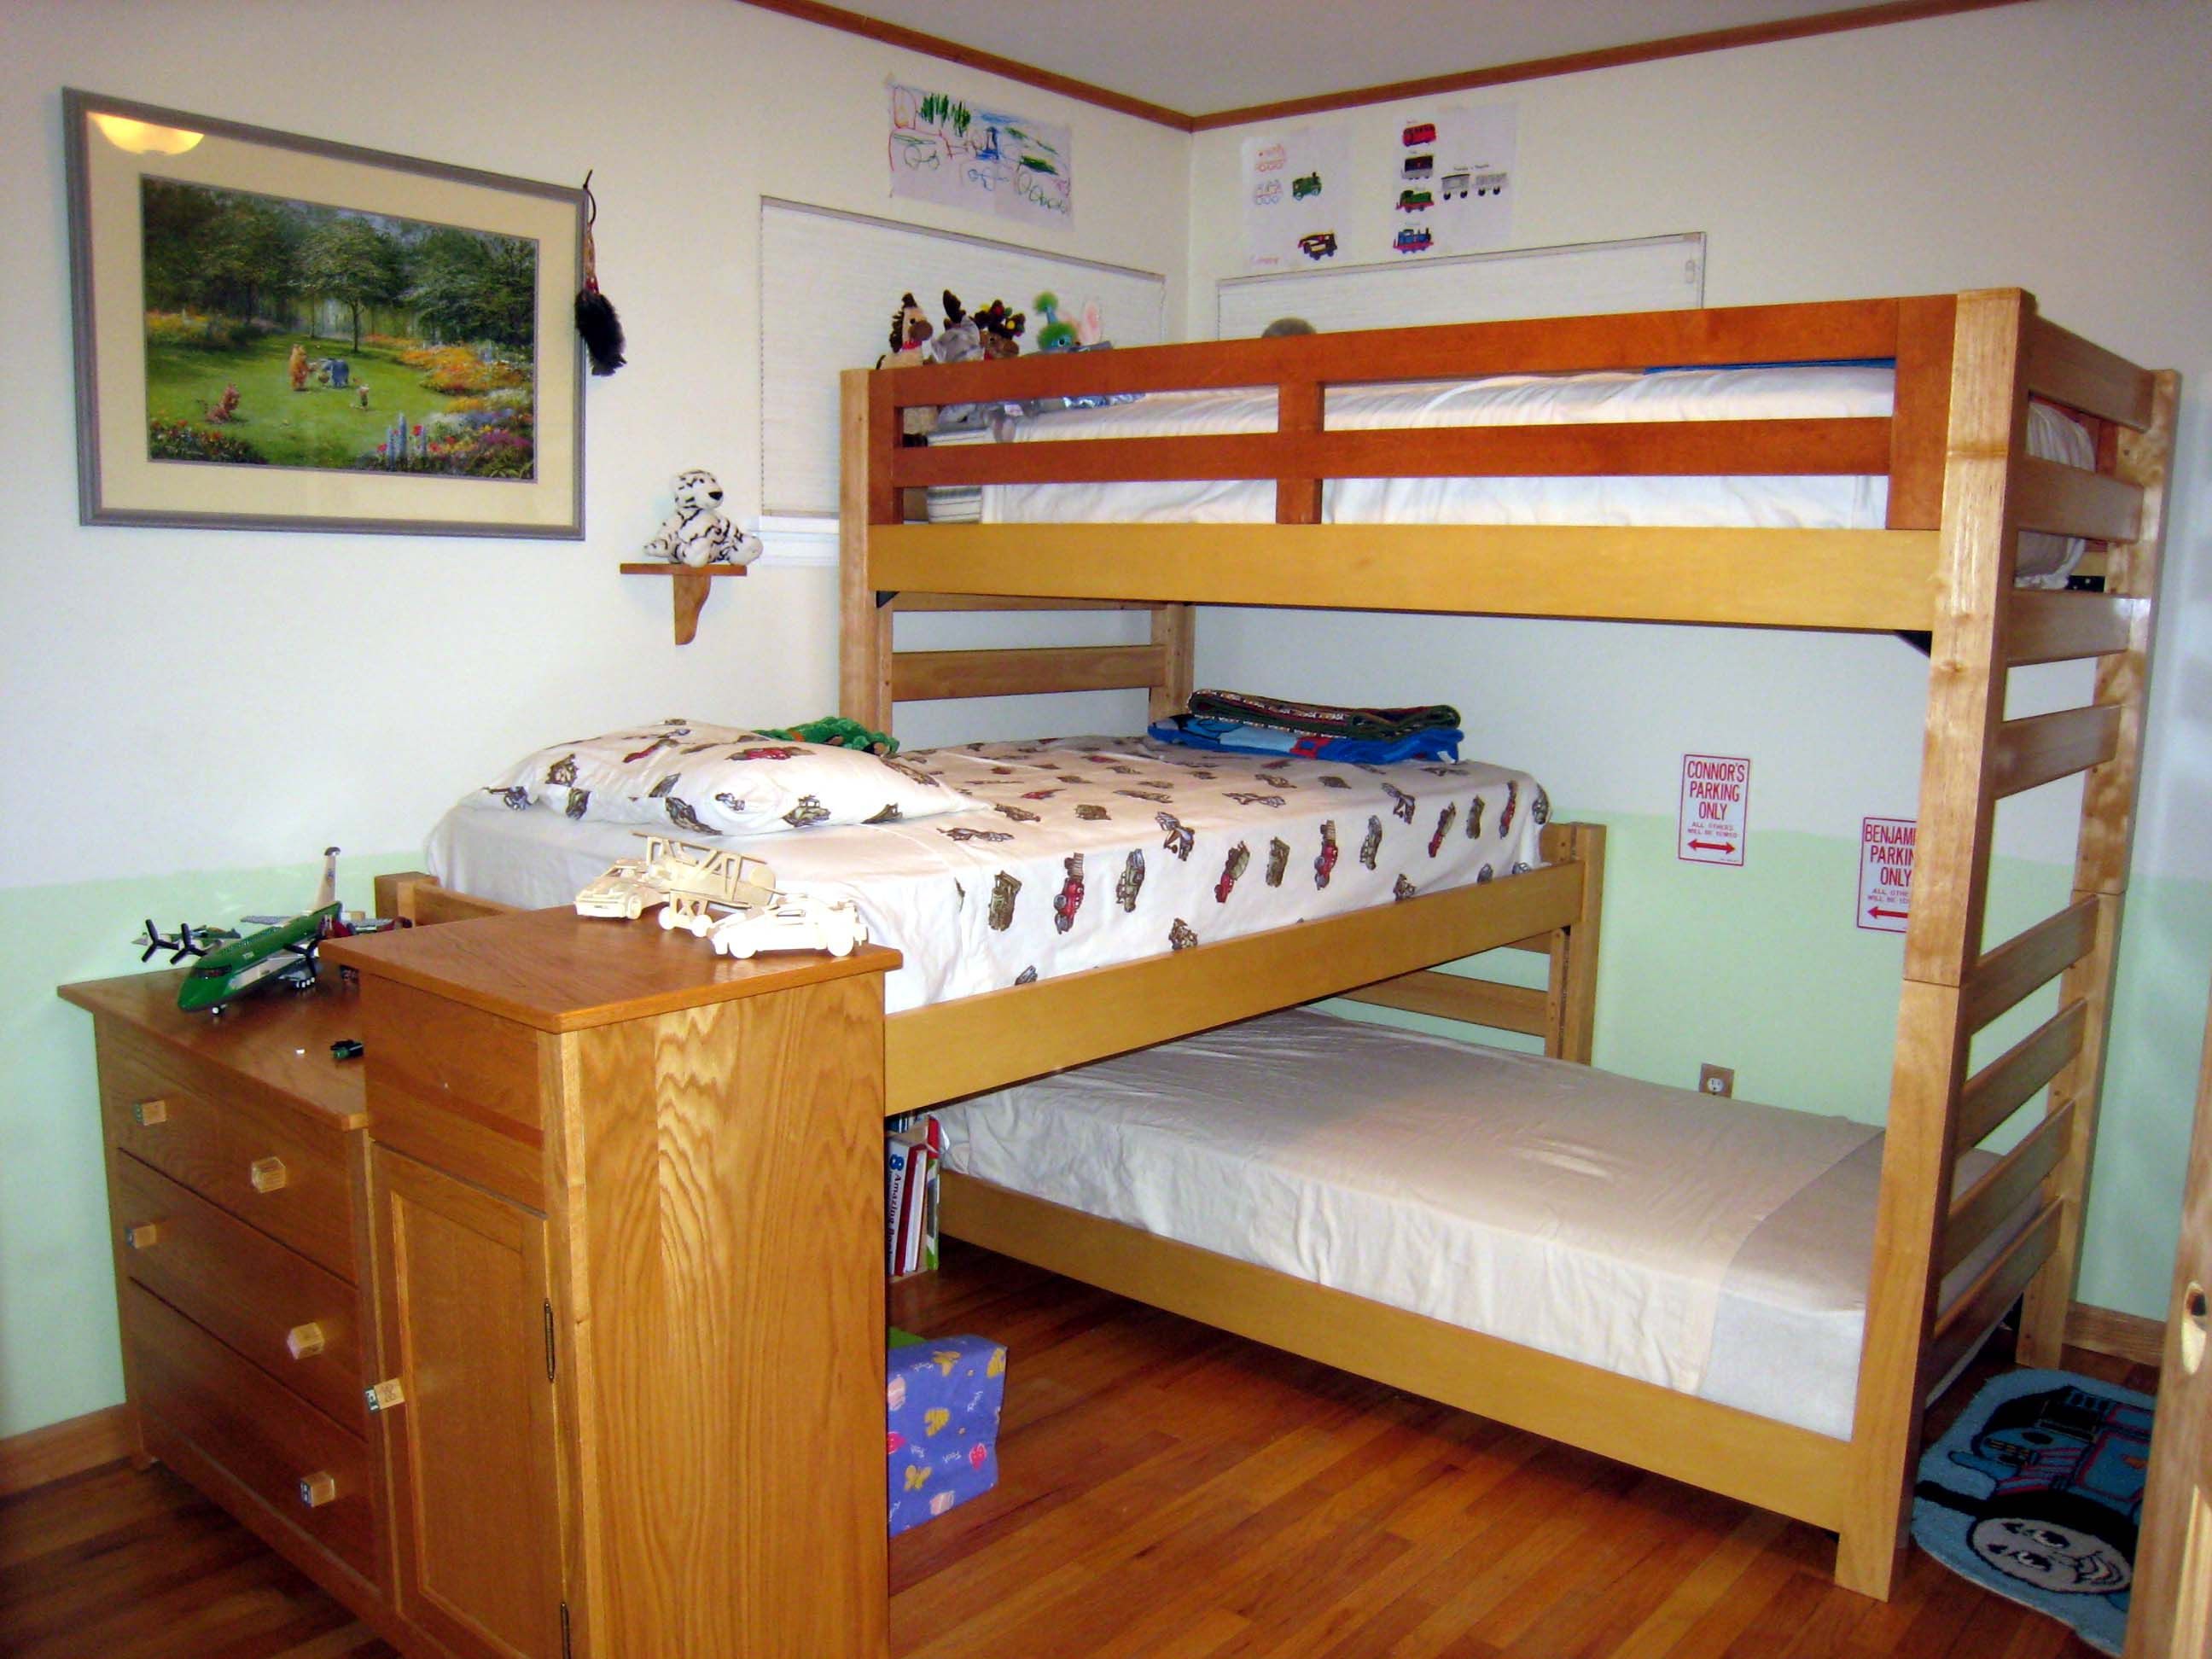 Unique Bunk Beds With Smart Custom Bunk Beds Kids Room Images Unique Bunk